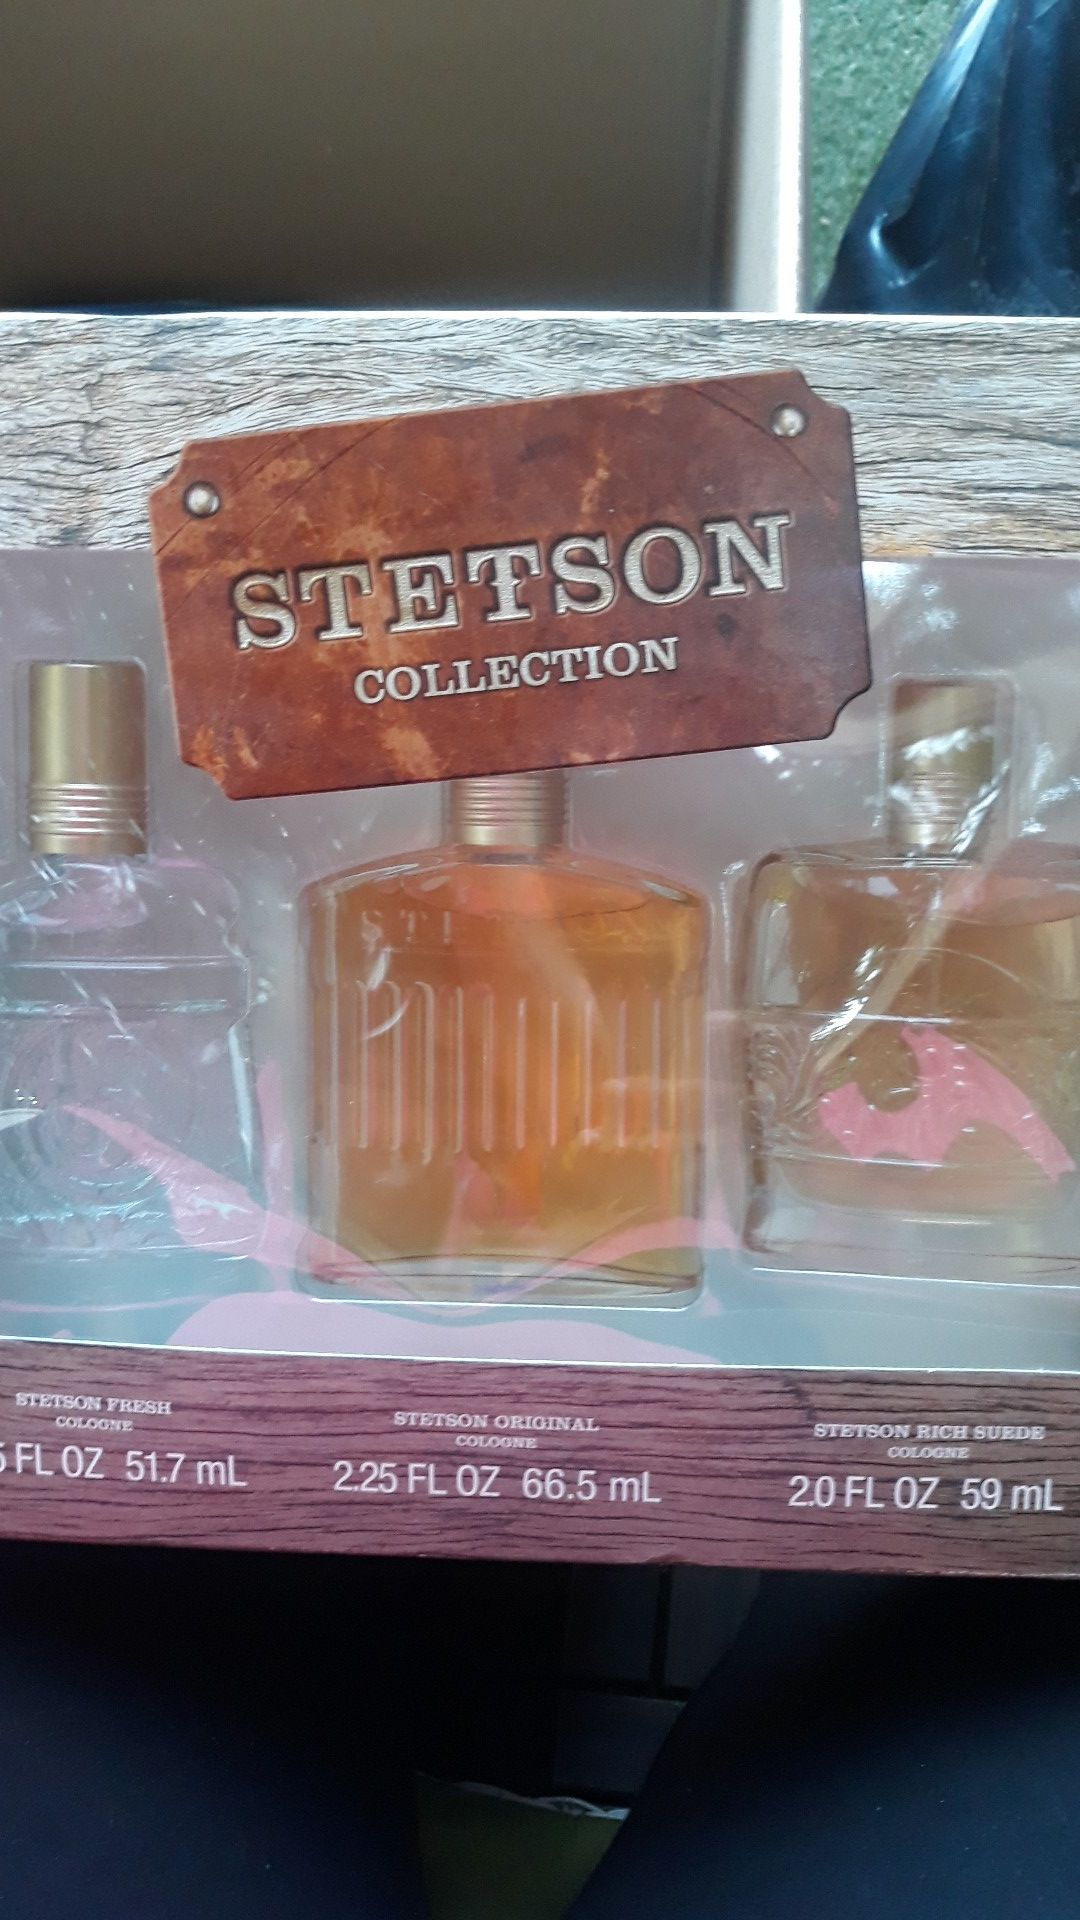 Stetson collection